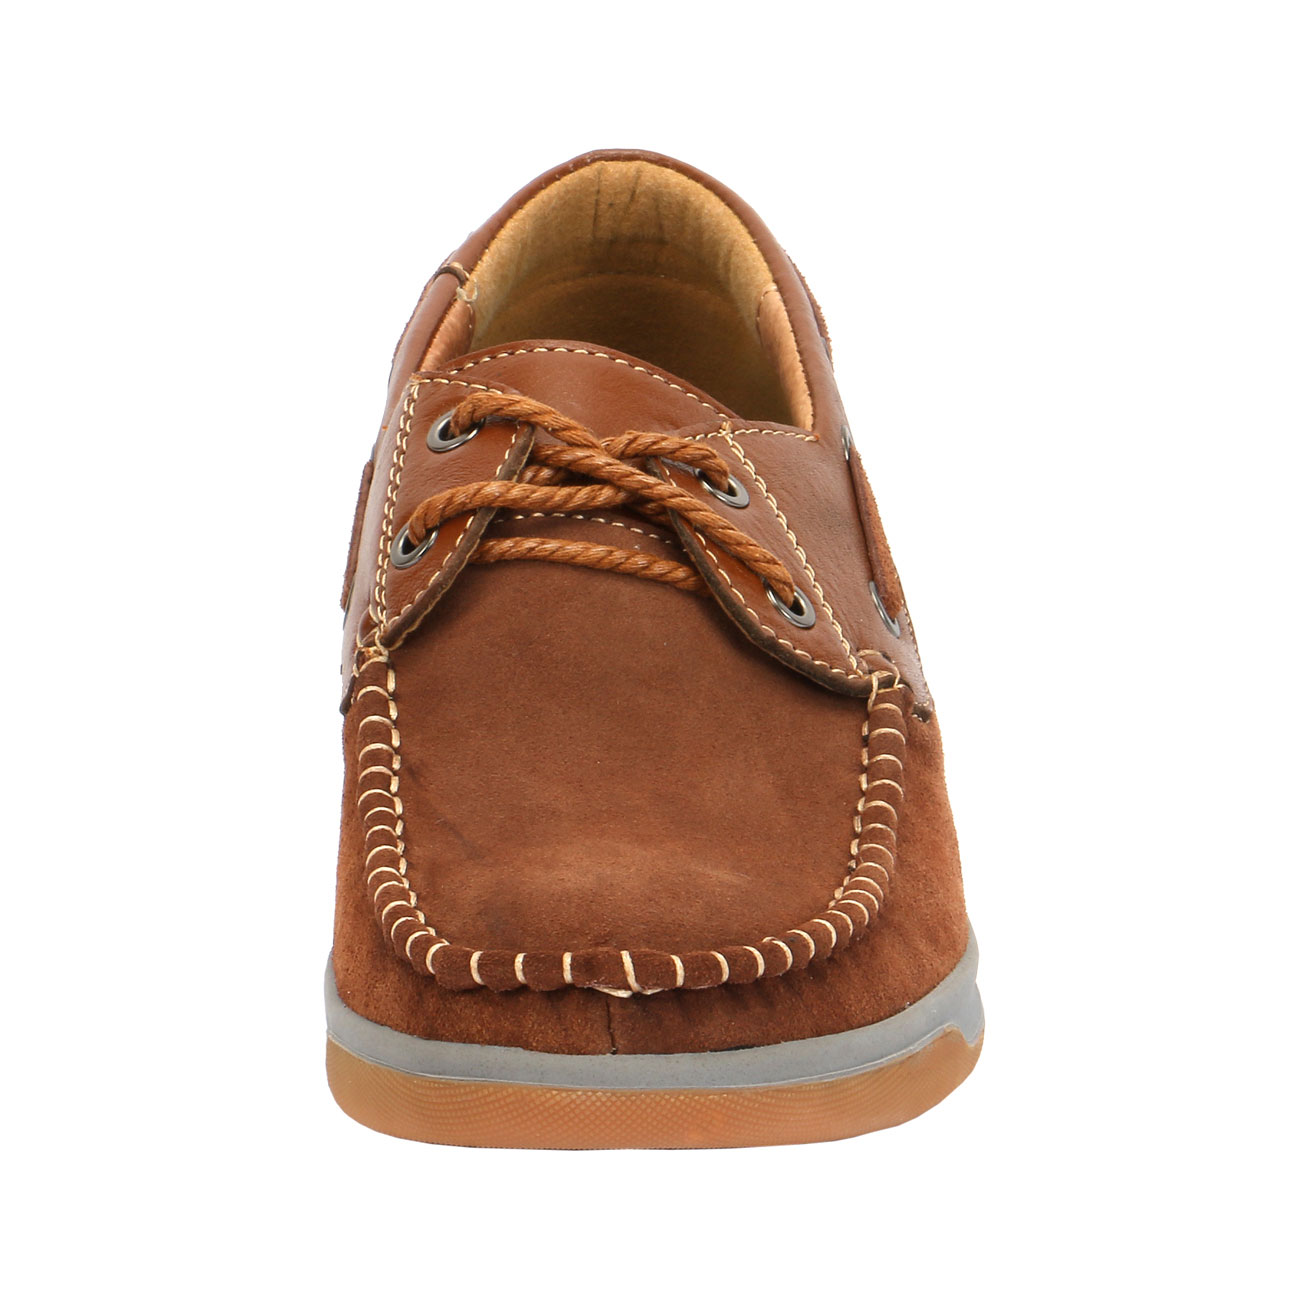 Casual elevator shoes for men-2